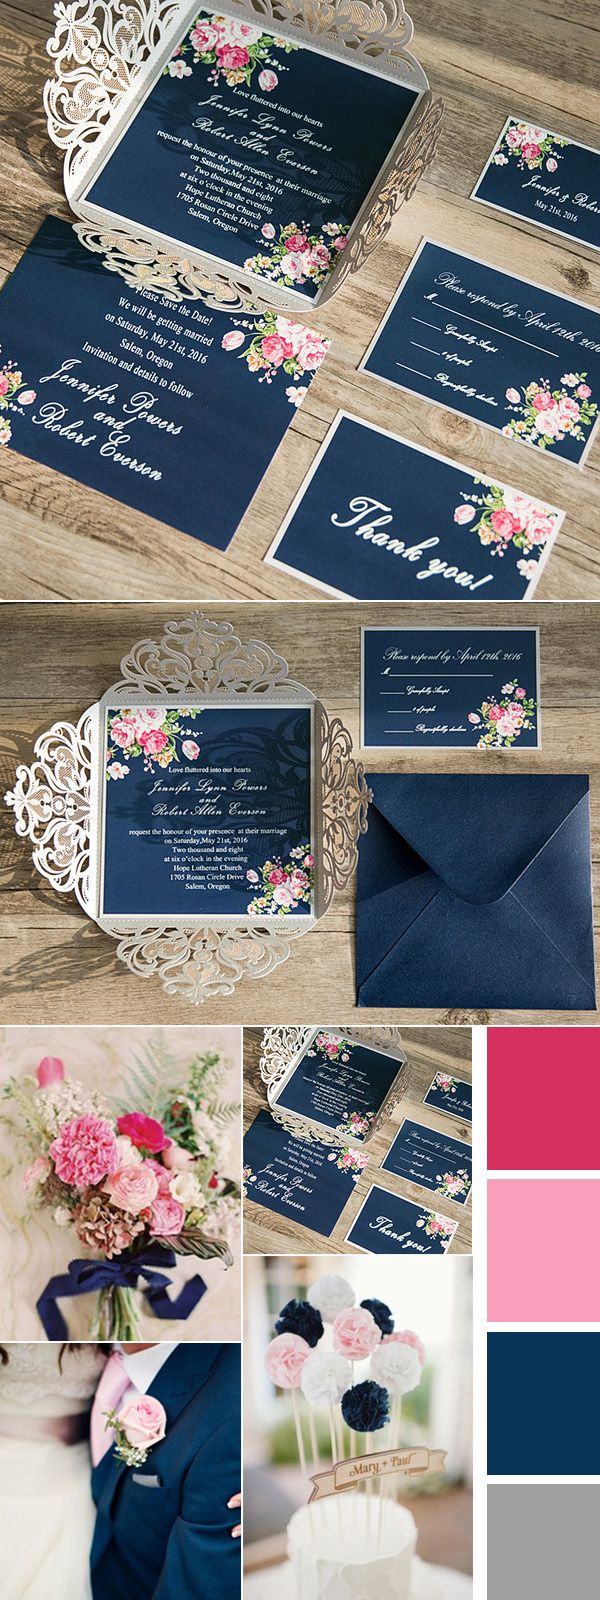 Shabby Chic Floral Navy Blue and Pink Wedding Colors Inspired Laser Cut Wedding Invitations @elegantwinvites ---- 10% OFF CODE: mod